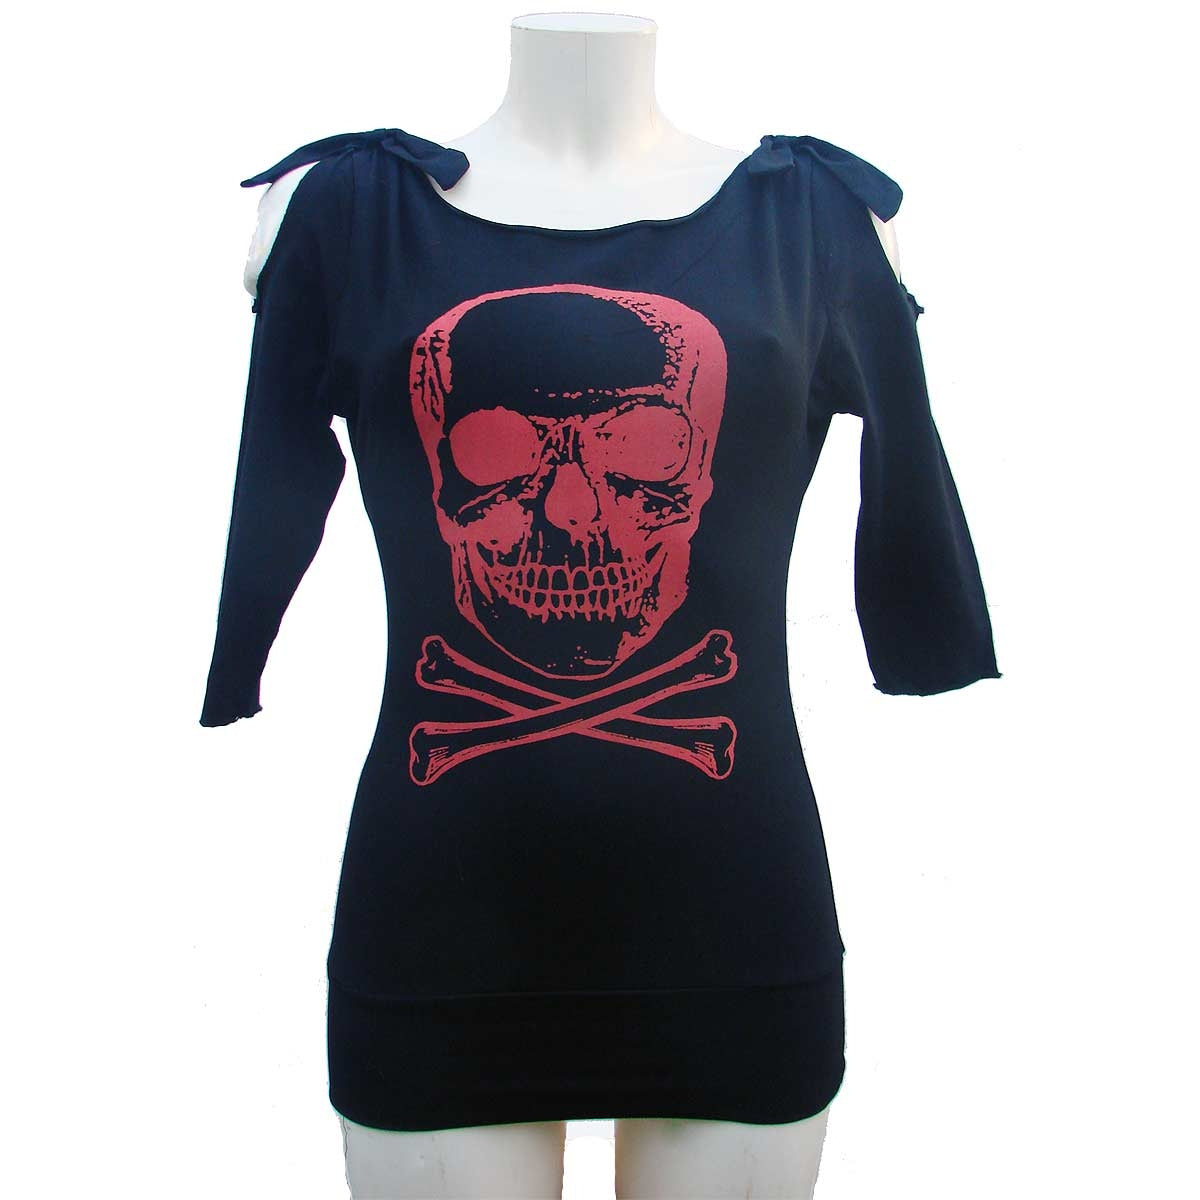 Woman's top t-shirt Black Skull Zoe